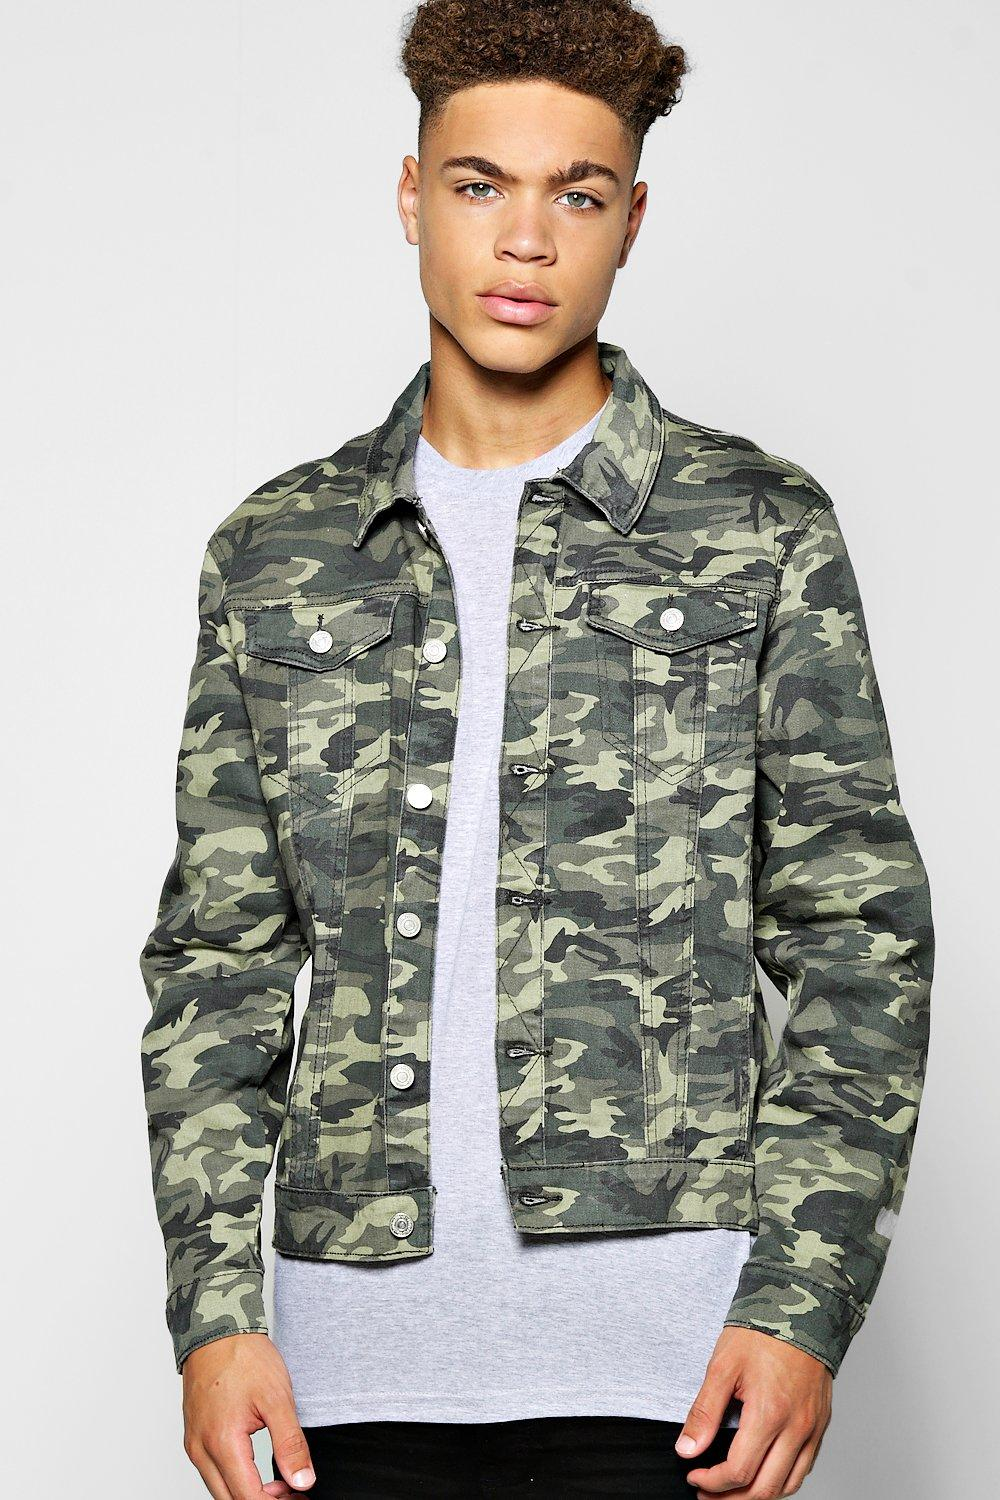 Camo Jacket and Jeans. This is a classic combination that works particularly well if you go for a darker shade of jeans. It's also a rule you should stick to when pairing a jacket with mens camouflage trousers as it won't look as good with lighter hues.